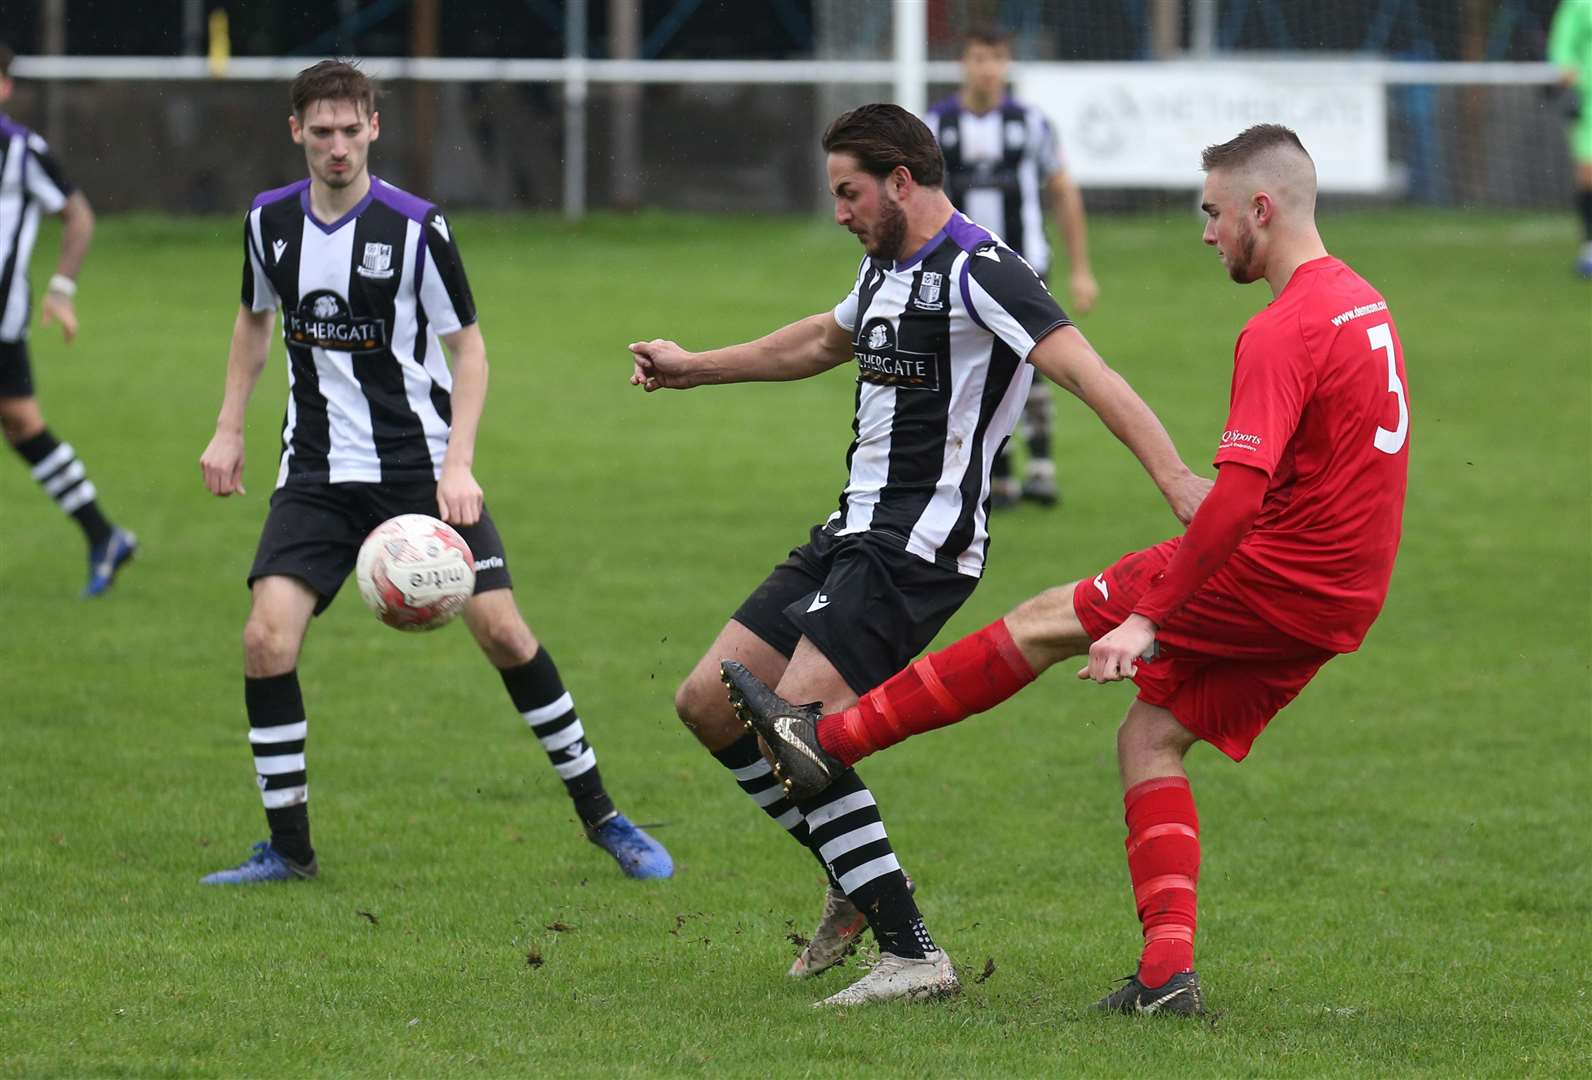 Nathan Rowe was on target for Long Melford last night	Picture: Richard Marsham